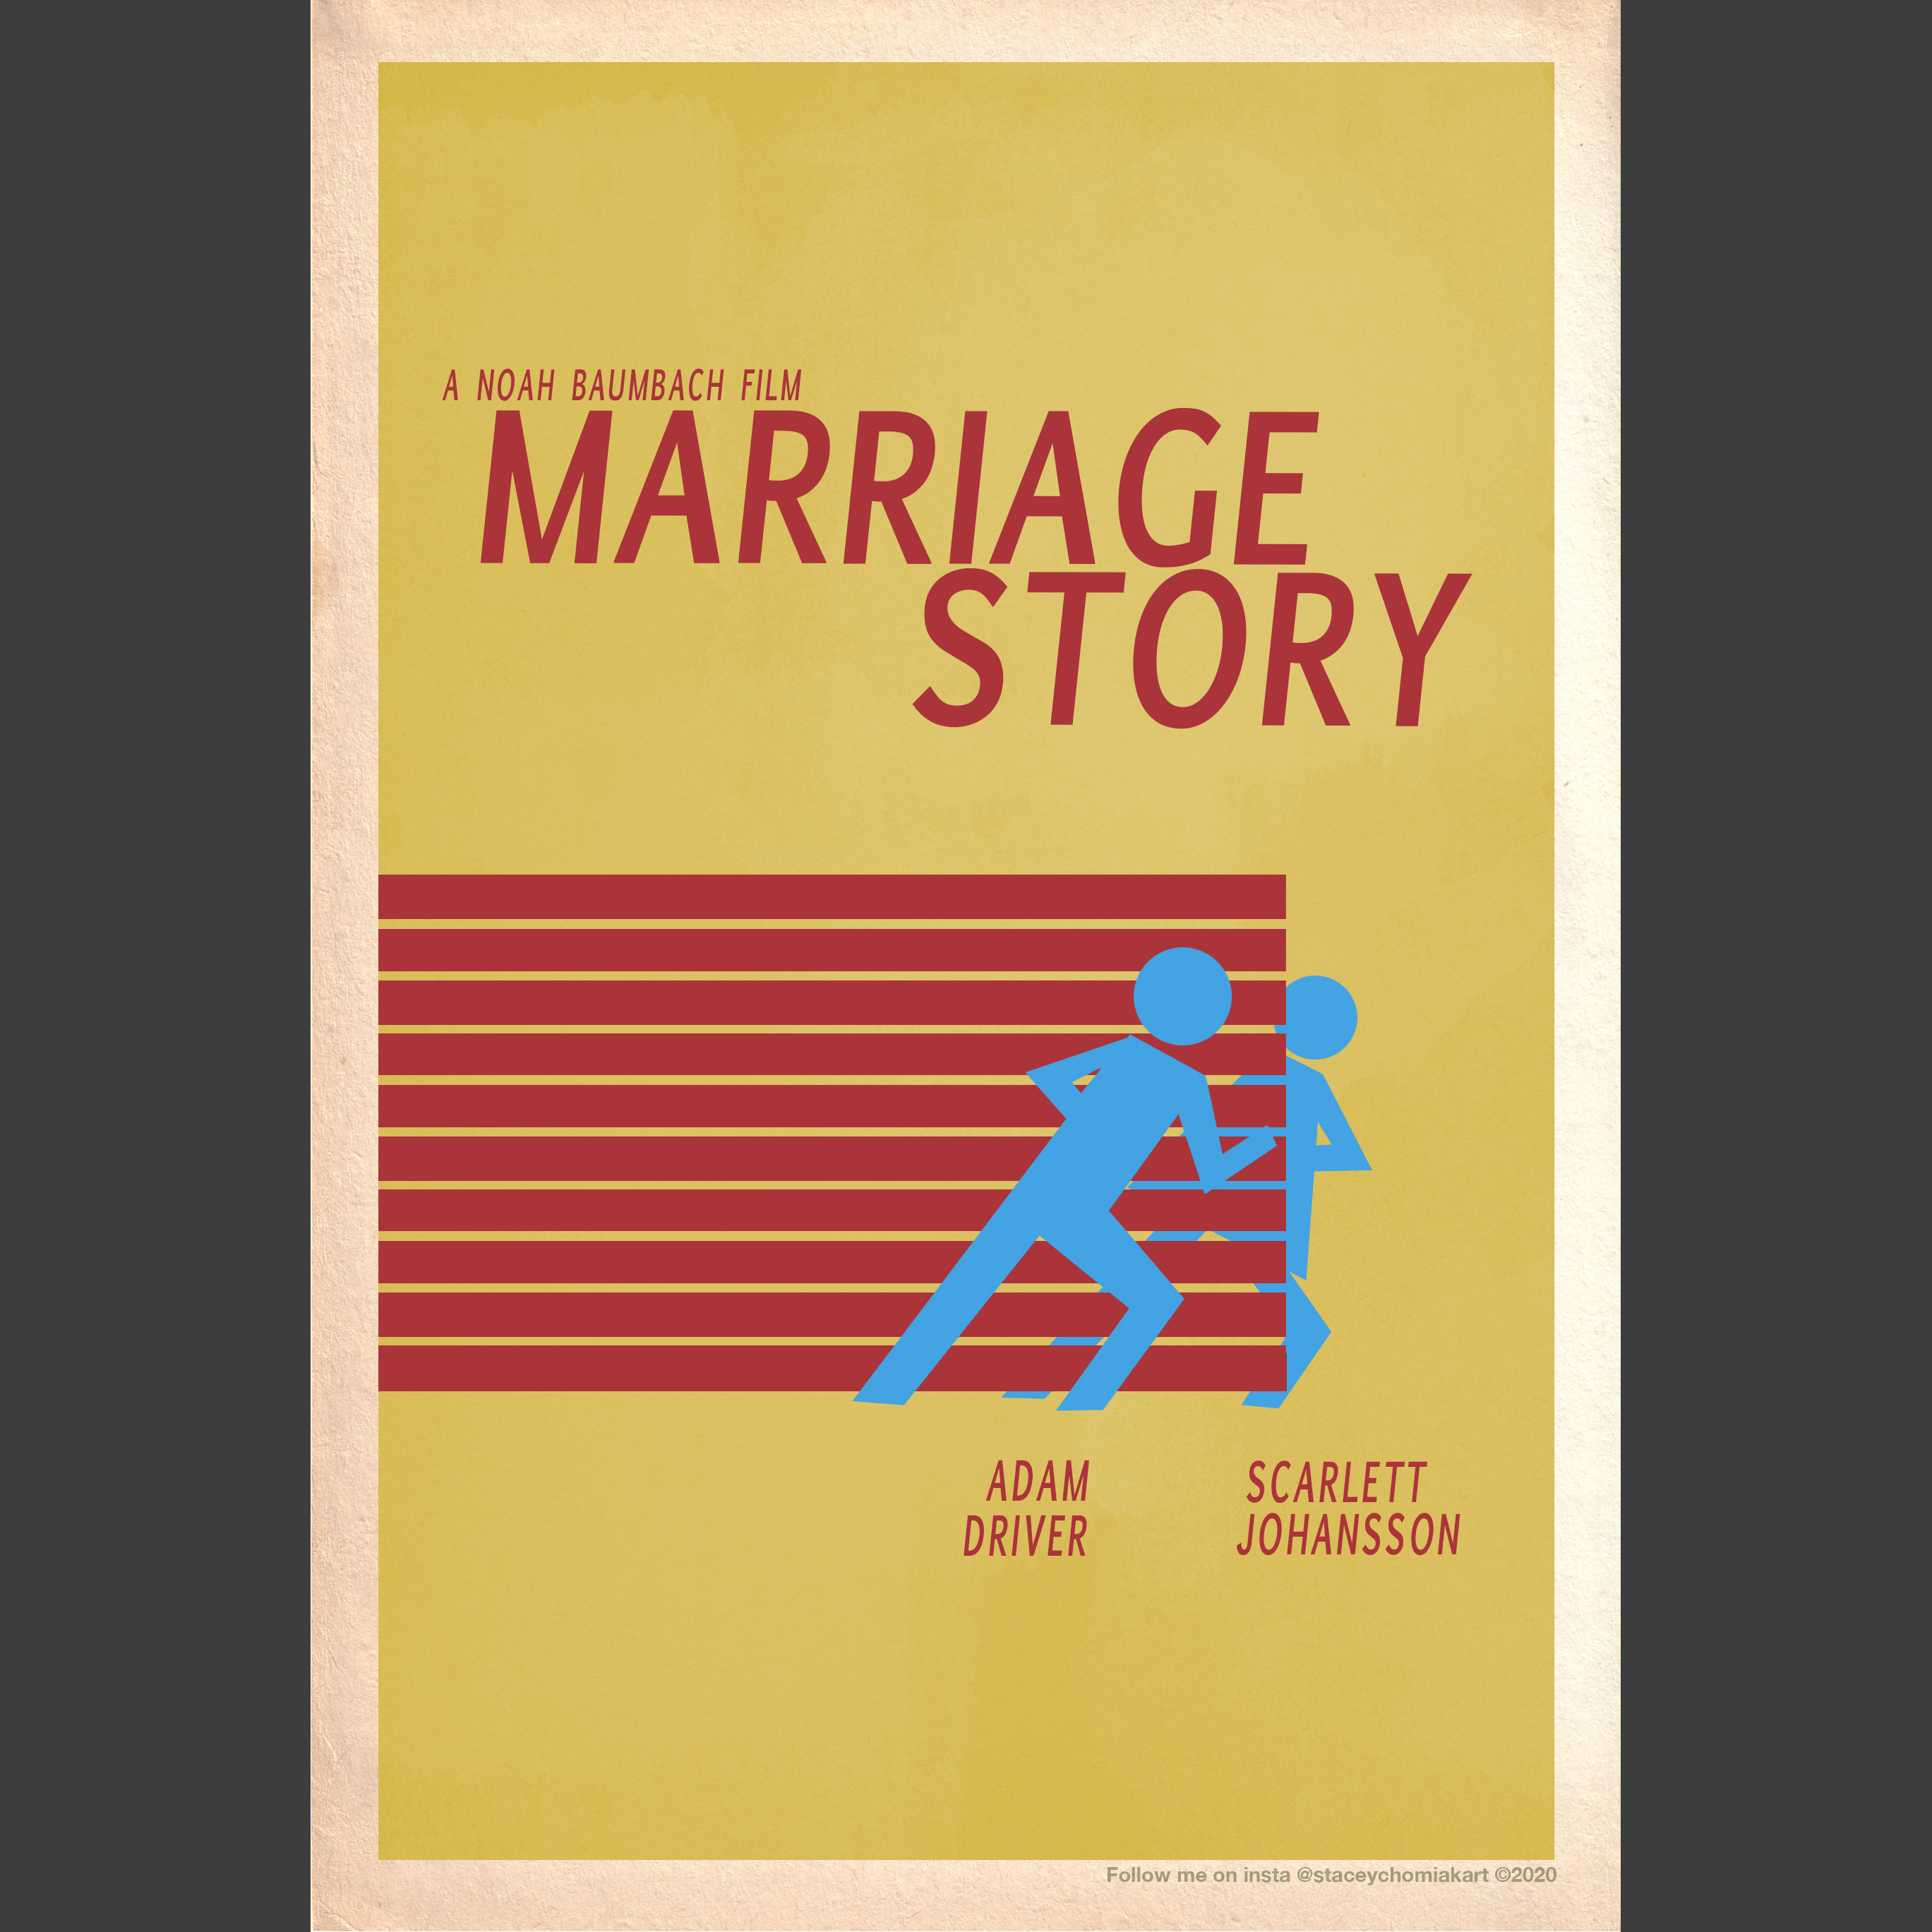 MarriageStory_2019square